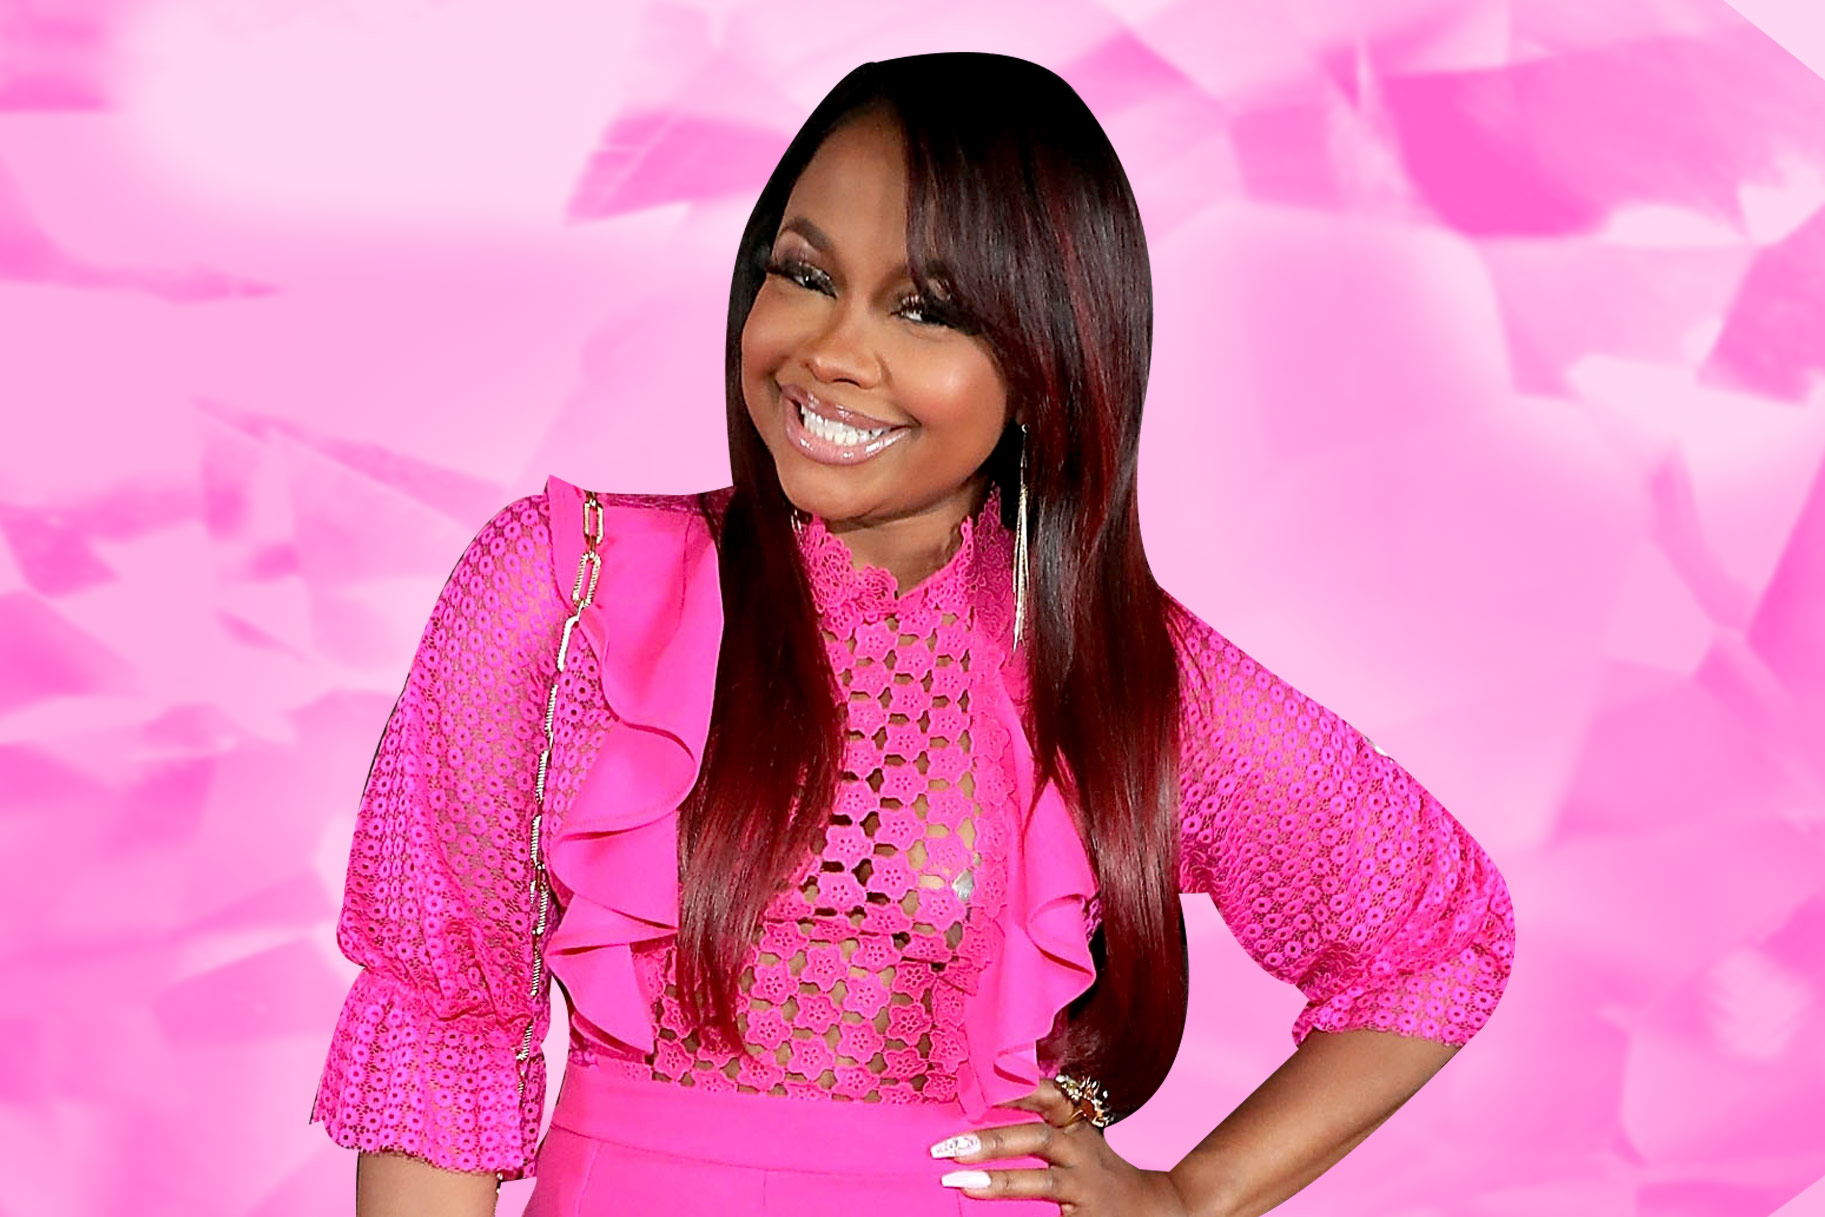 Phaedra Parks Raises Awareness About Another Tragic Crime That Took Place Recently